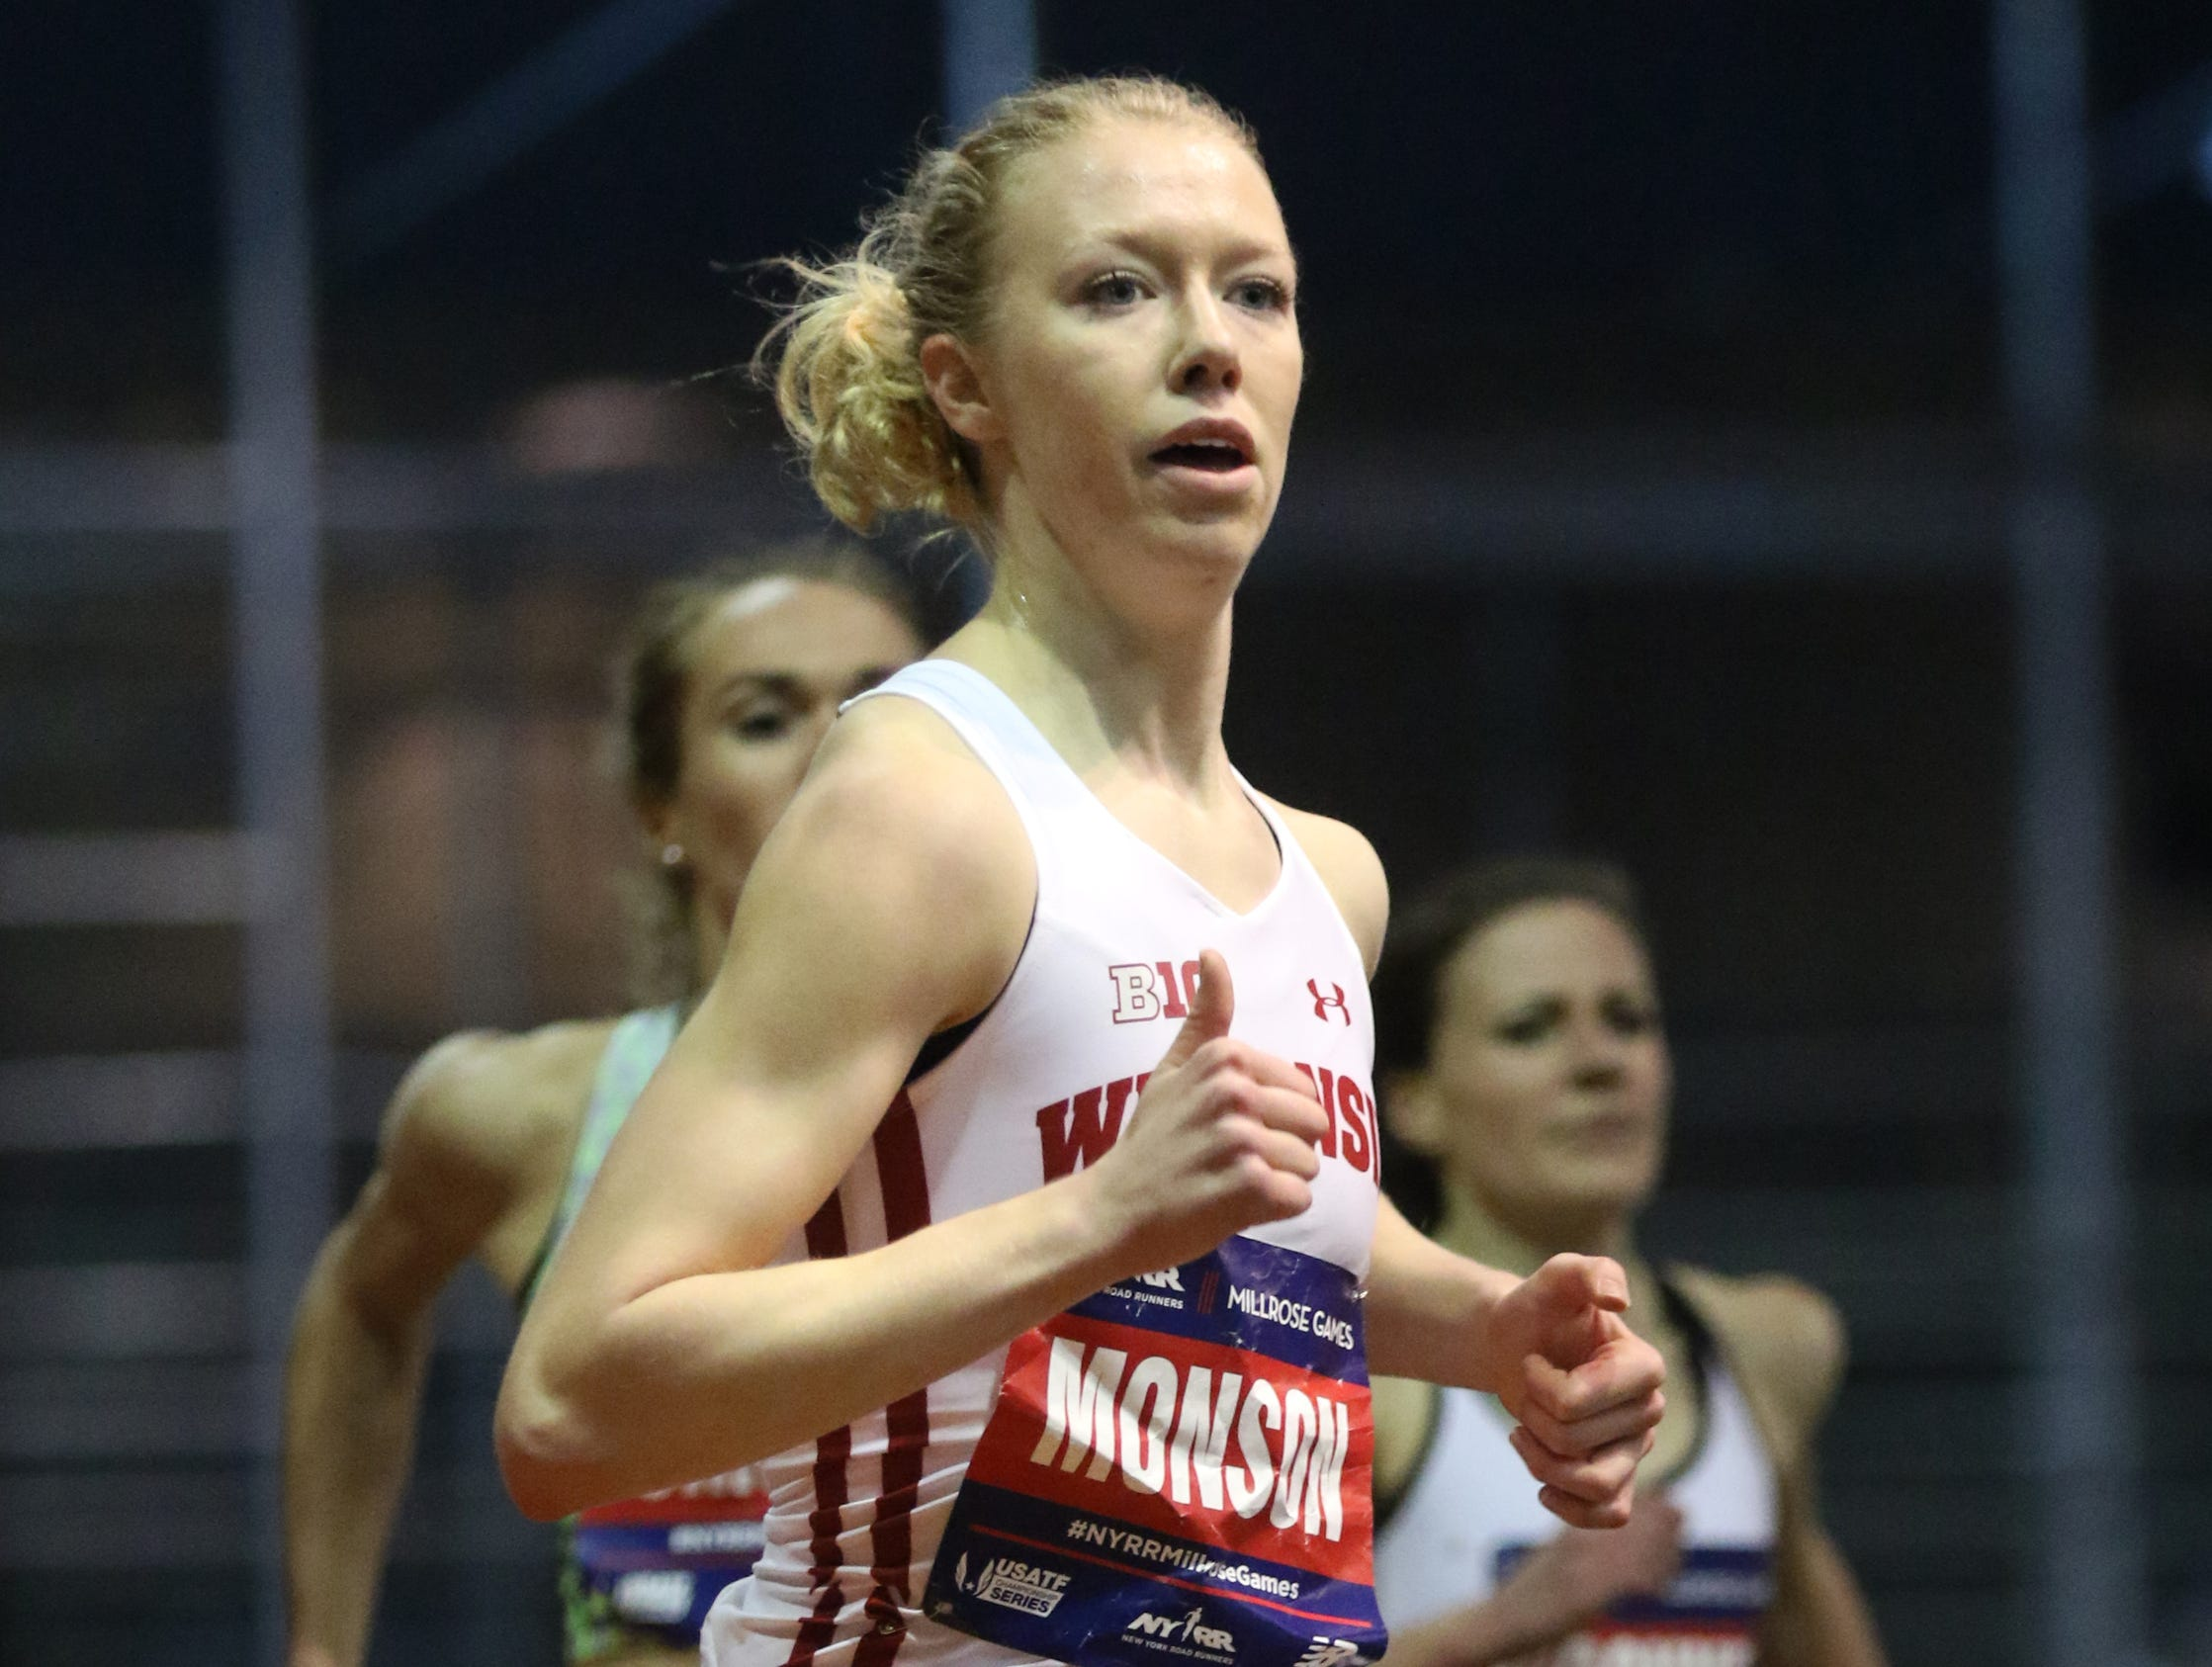 Alicia Monson made a surprise, come from behind victory in the 3000 meter race.  Monson won with a time of 8:45.97. Saturday, February 9, 2019